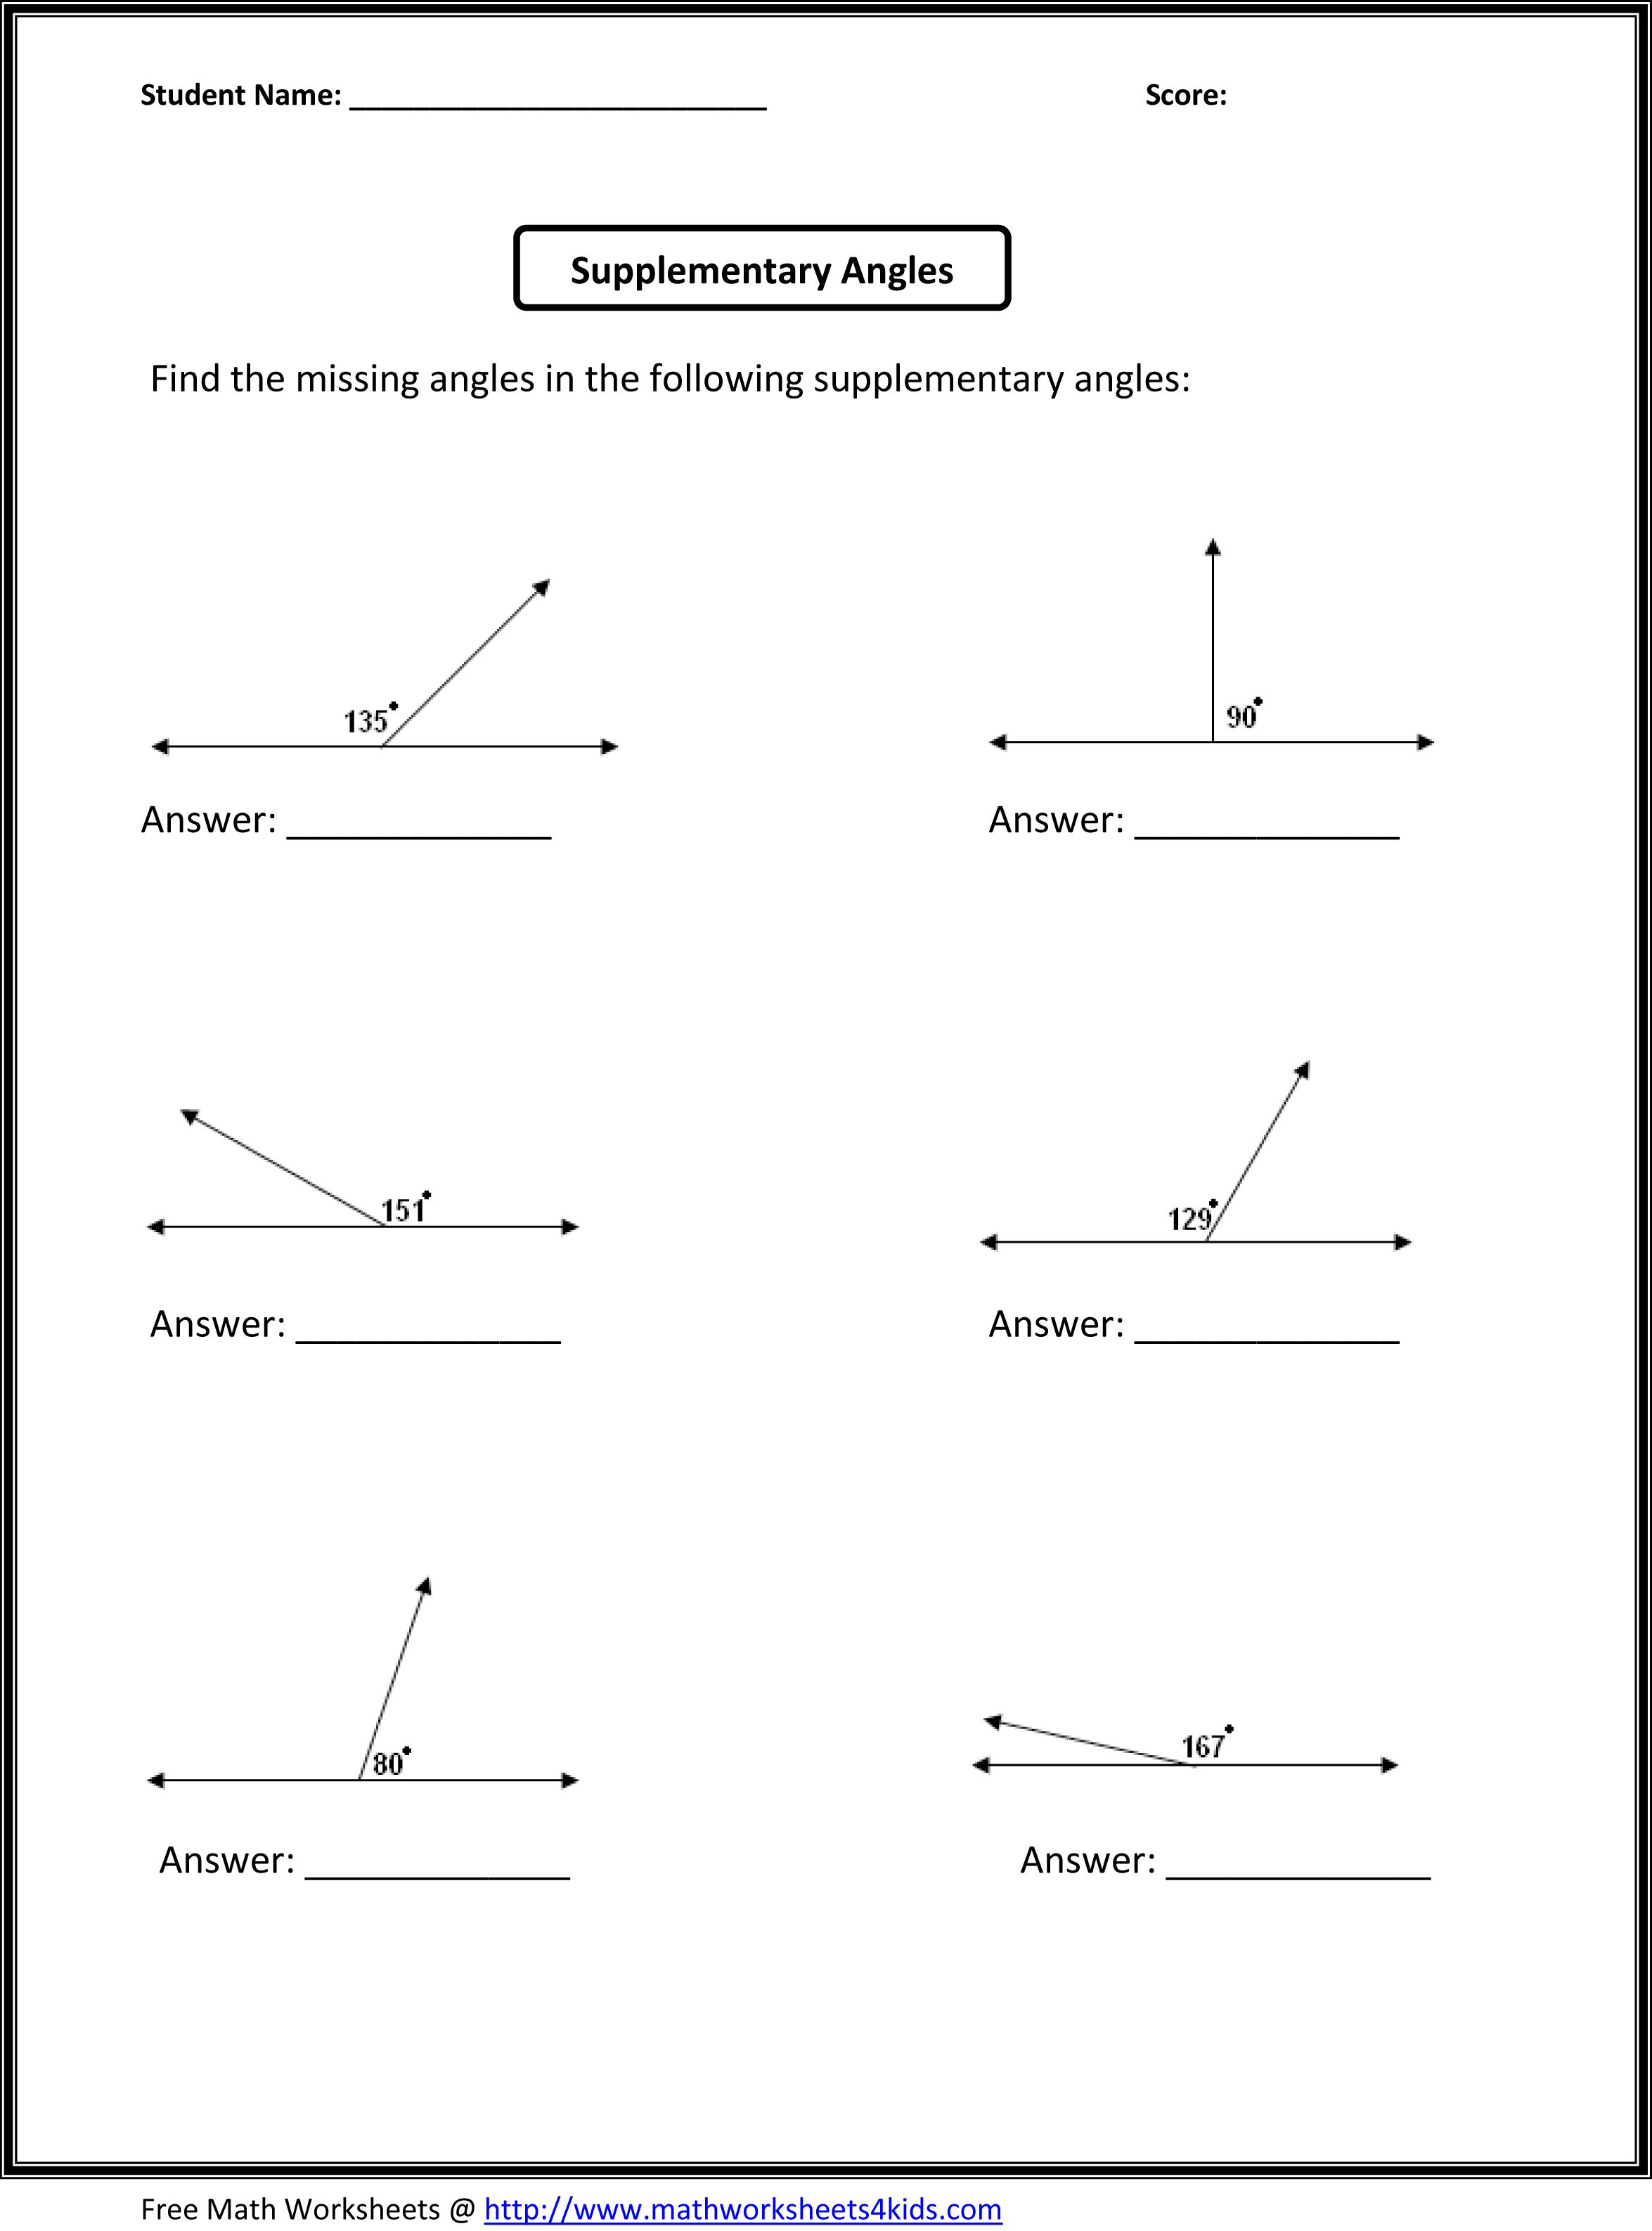 Worksheets 6th Grade Geometry Worksheets supplementary angles classroom madness pinterest activities sixth grade math worksheets have ratio multiplying and dividing fractions algebraic expressions equations inequalities geom